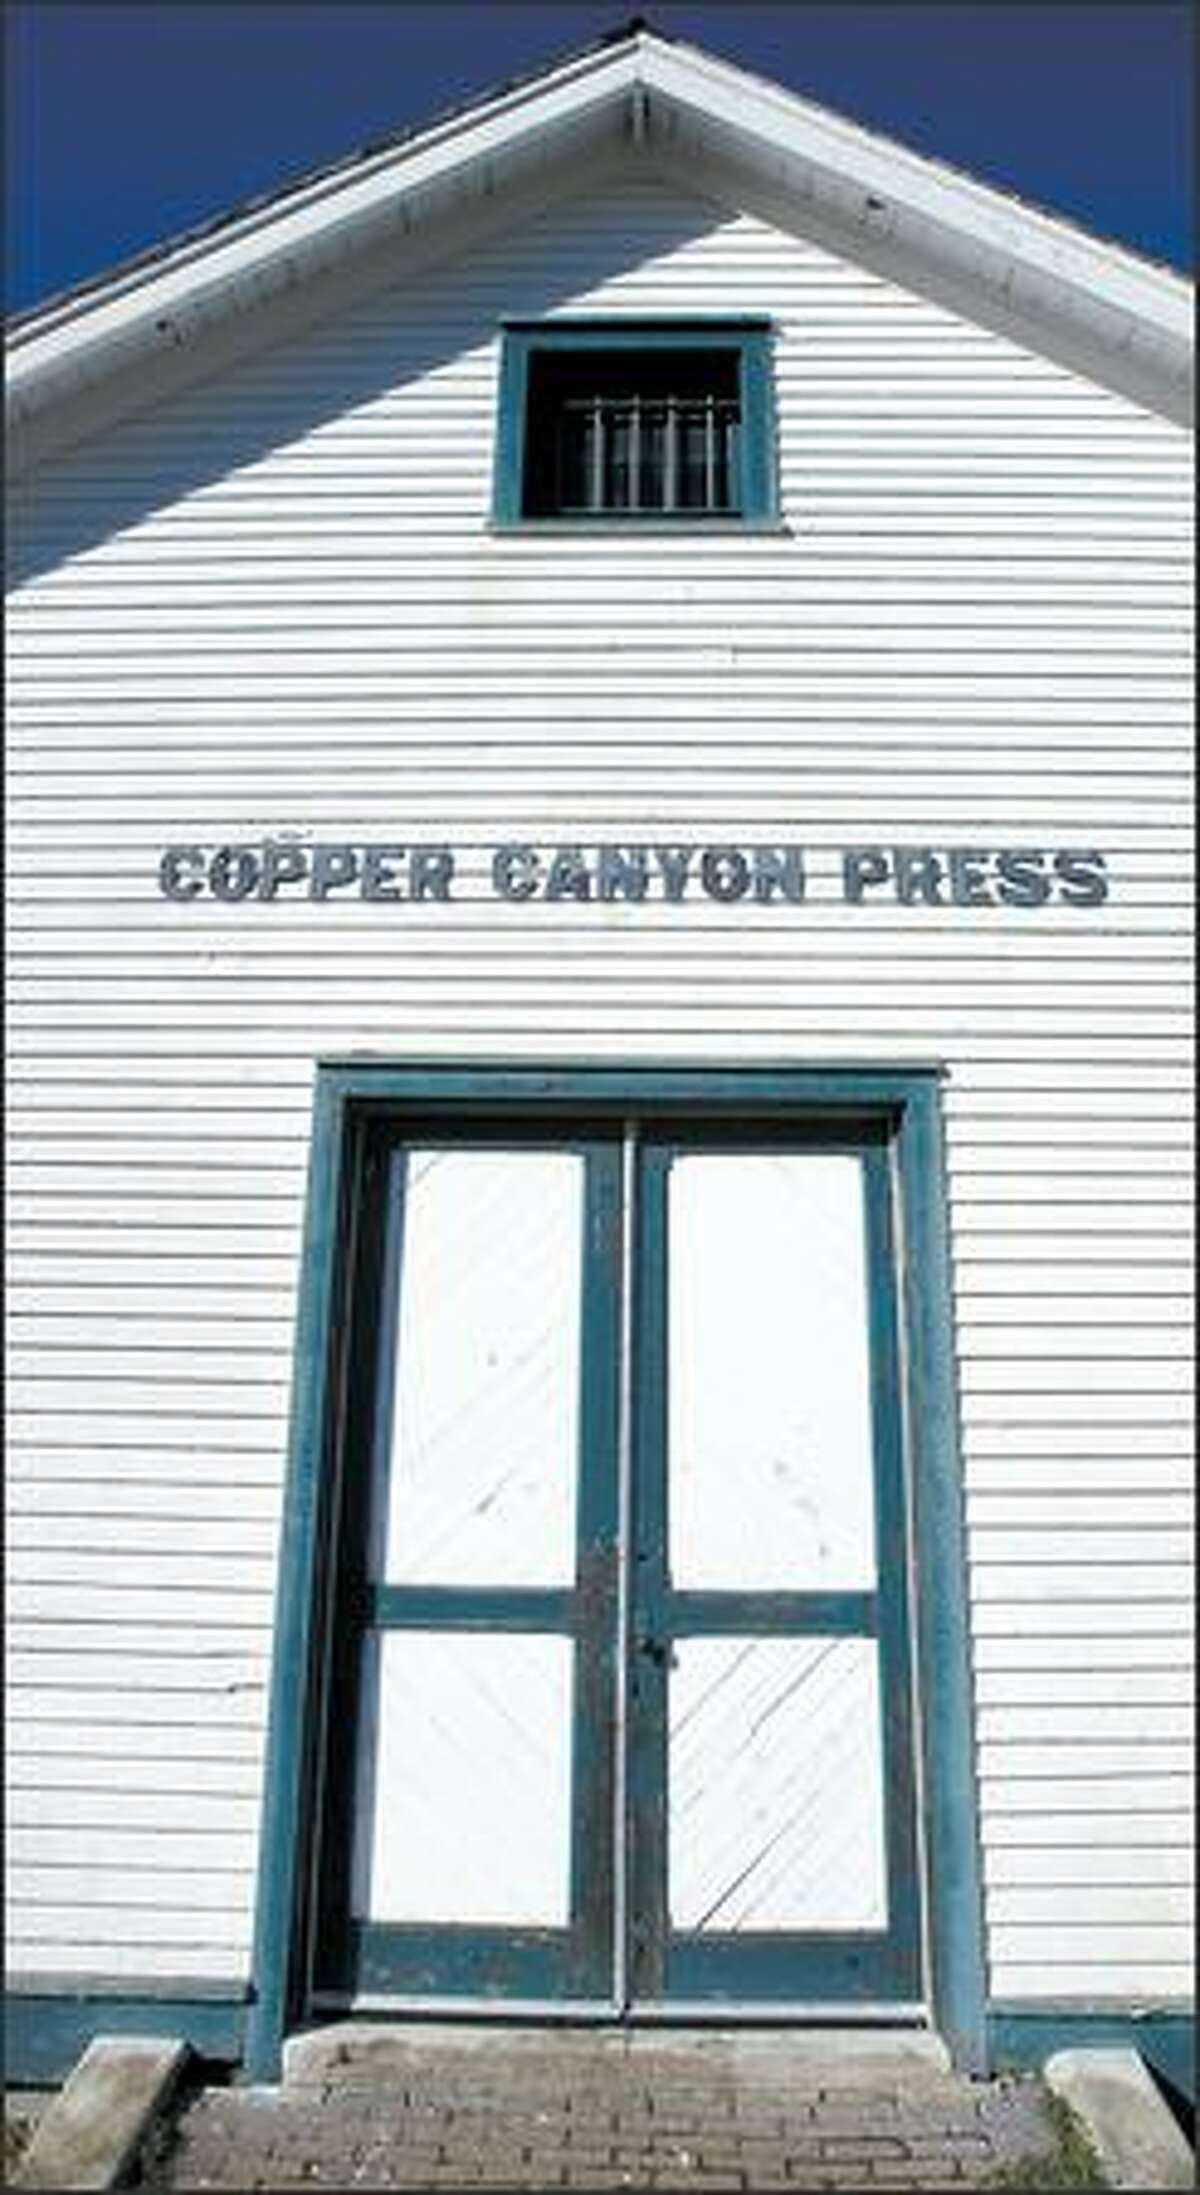 Copper Canyon Press in its historic building at Fort Worden State Park in Port Townsend.